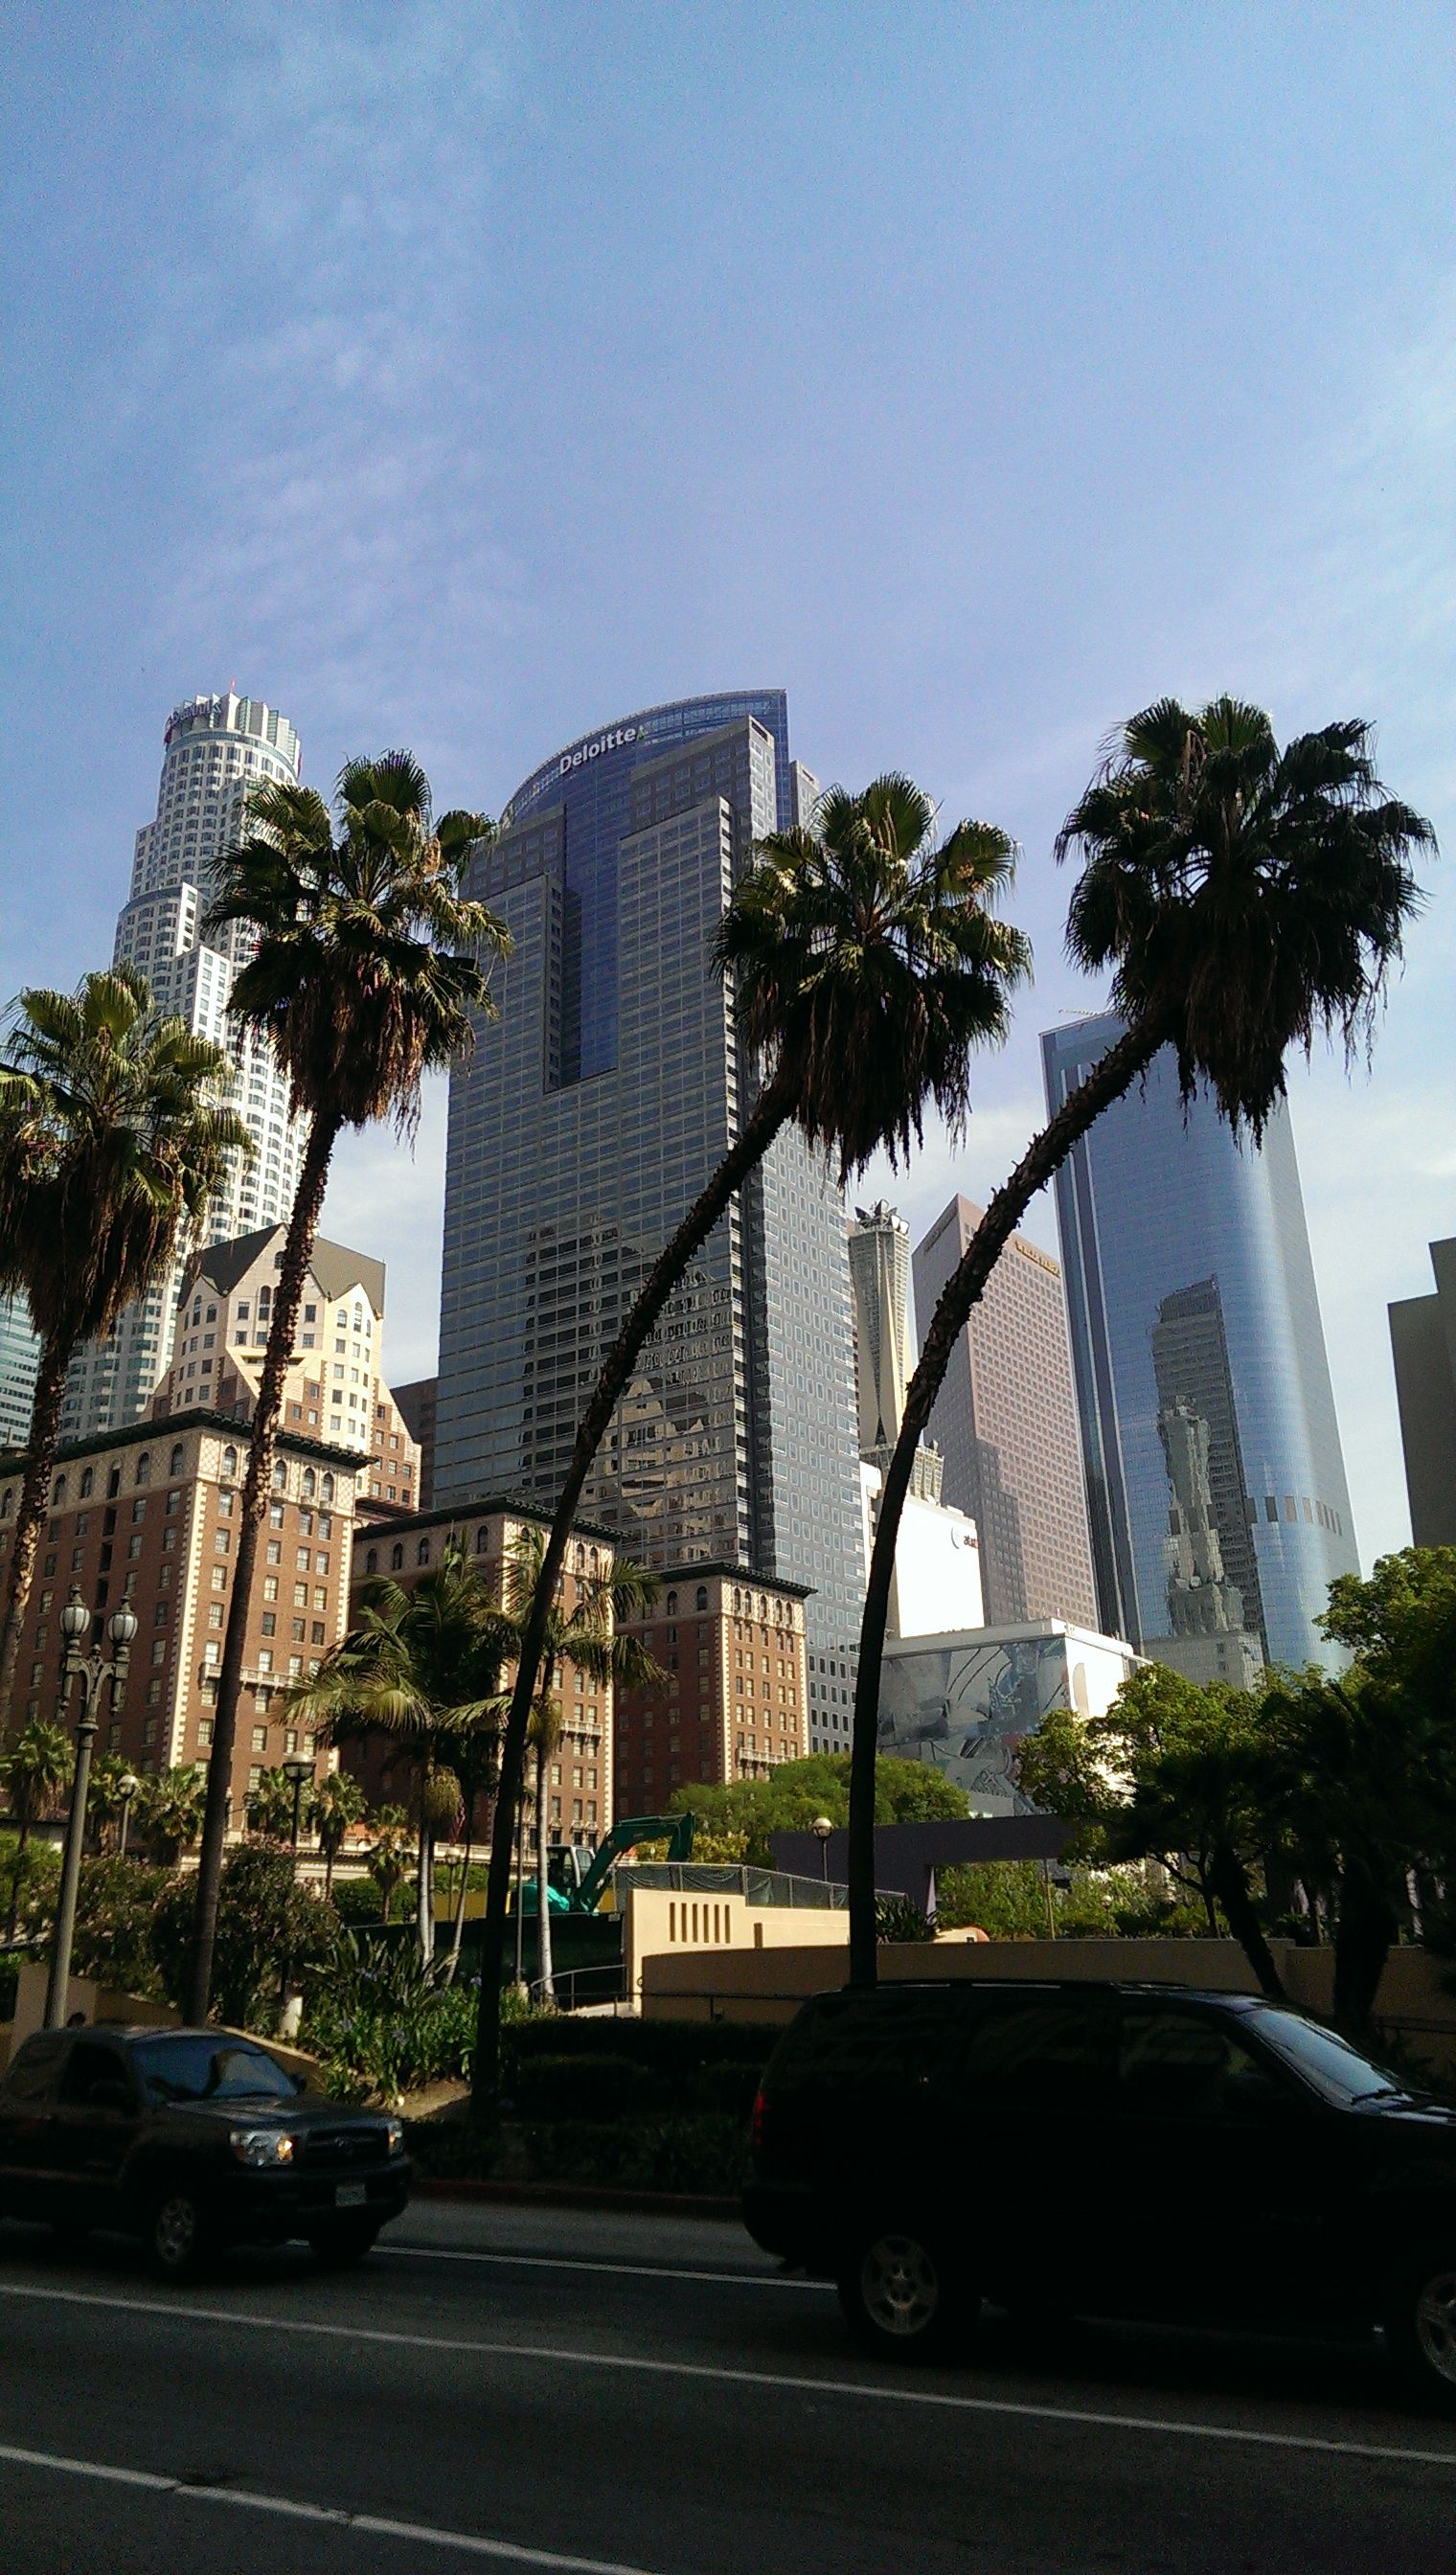 Downtown, LA  - The Ultimate Travel Guide: http://www.amazon.com/dp/B0165BJG7K